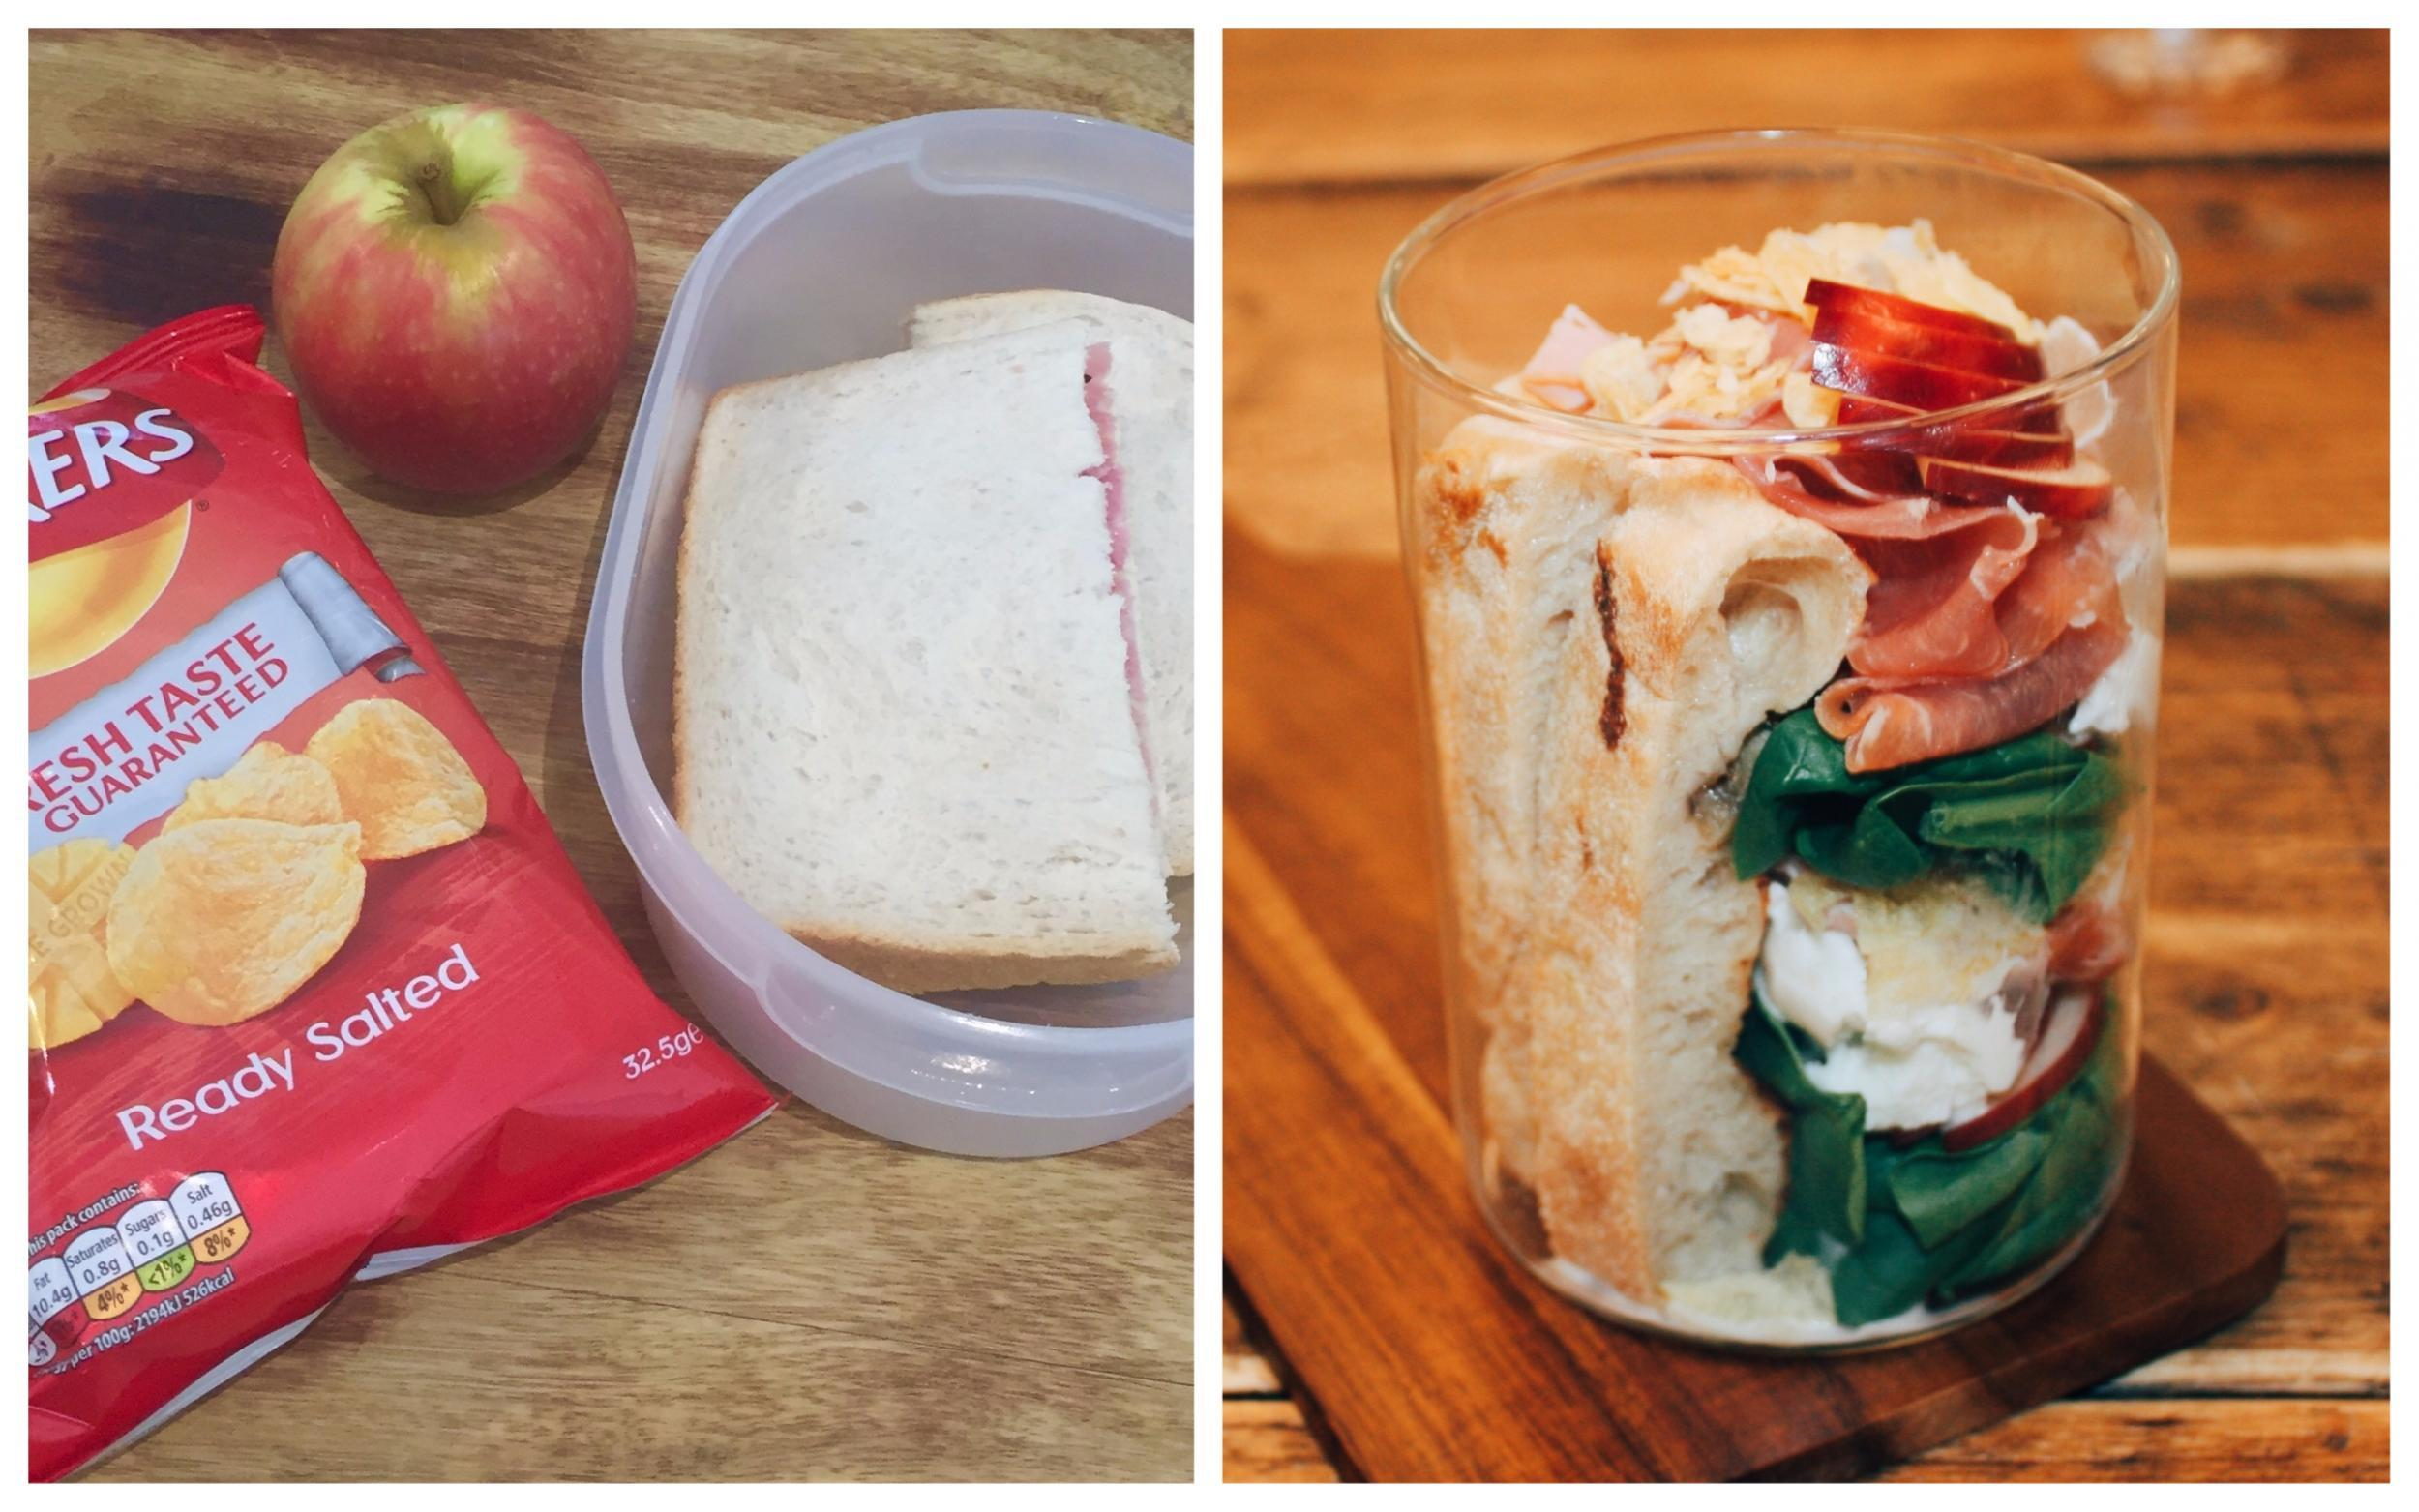 How To Make Your Packed Lunch Look And Taste Amazing According A Bring Own Set Tupperware Food Stylist The Independent